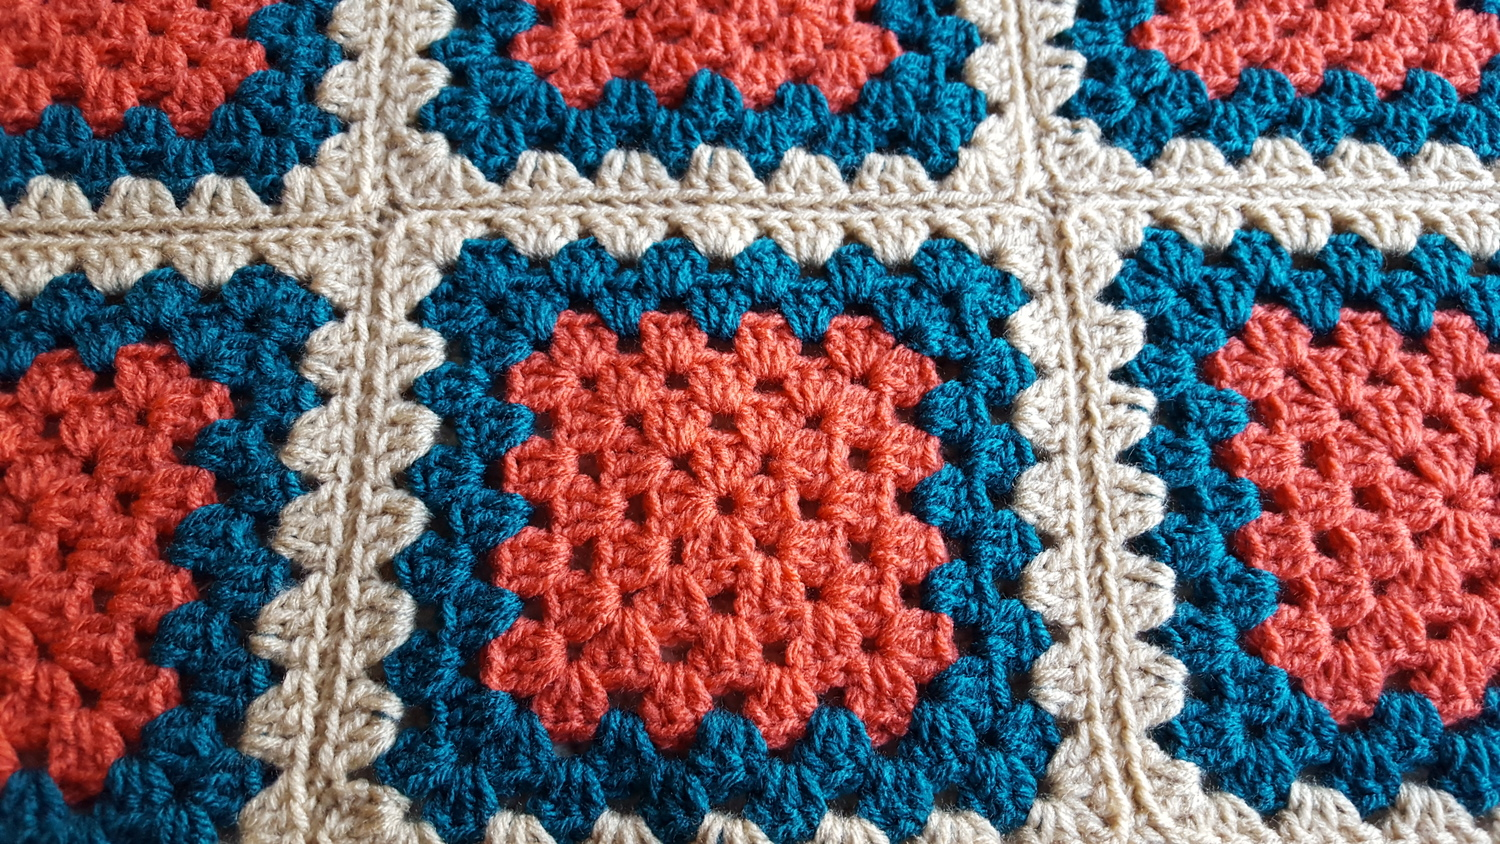 Basic Granny Squares With Cathy Intermediate Crochet Bloom